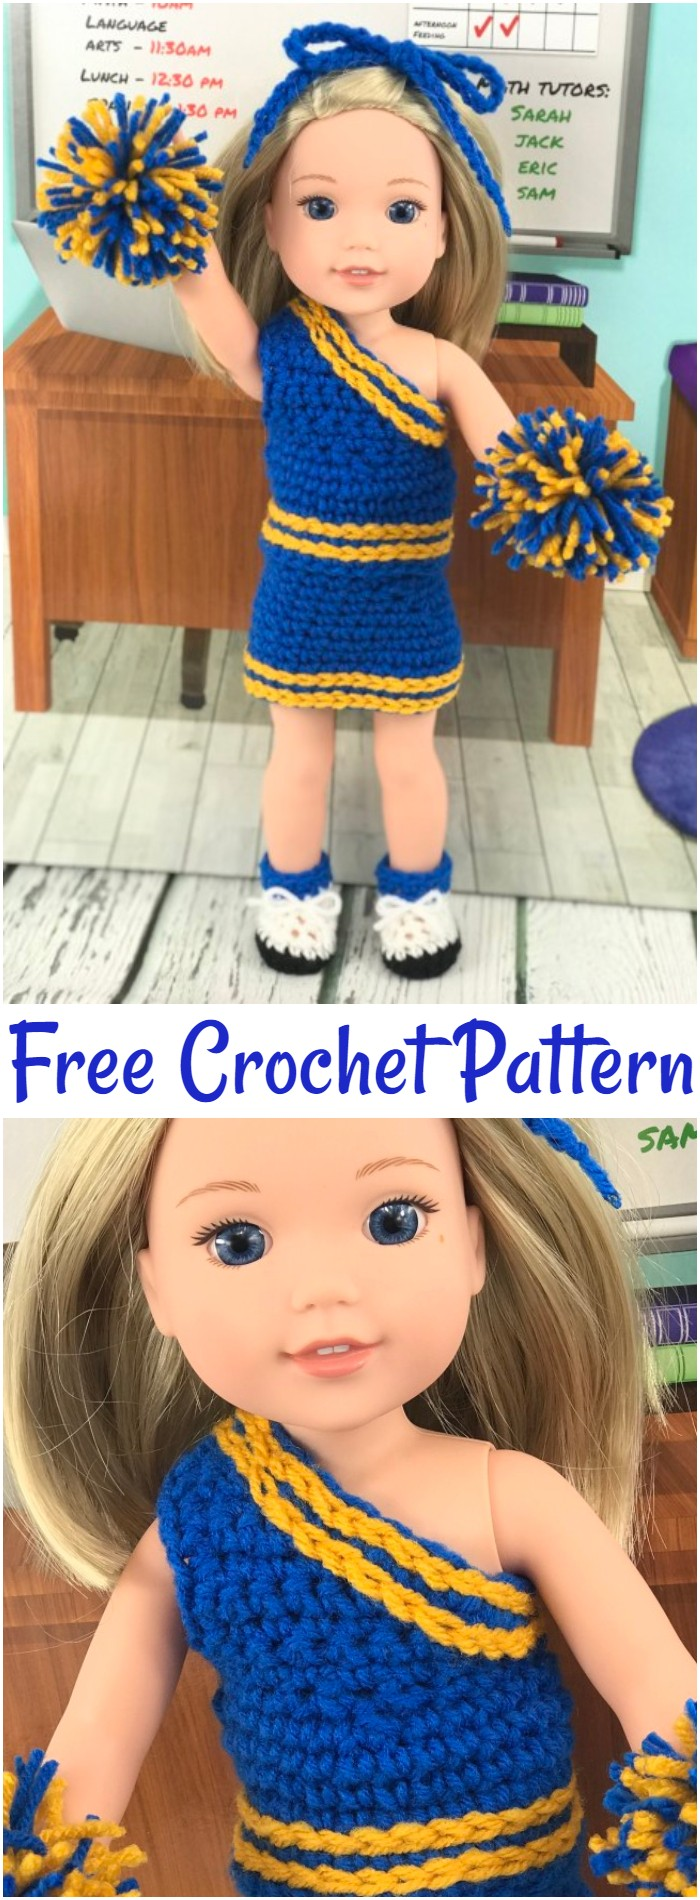 Free Crochet Pattern 14.5″ Doll Cheerleader Outfit